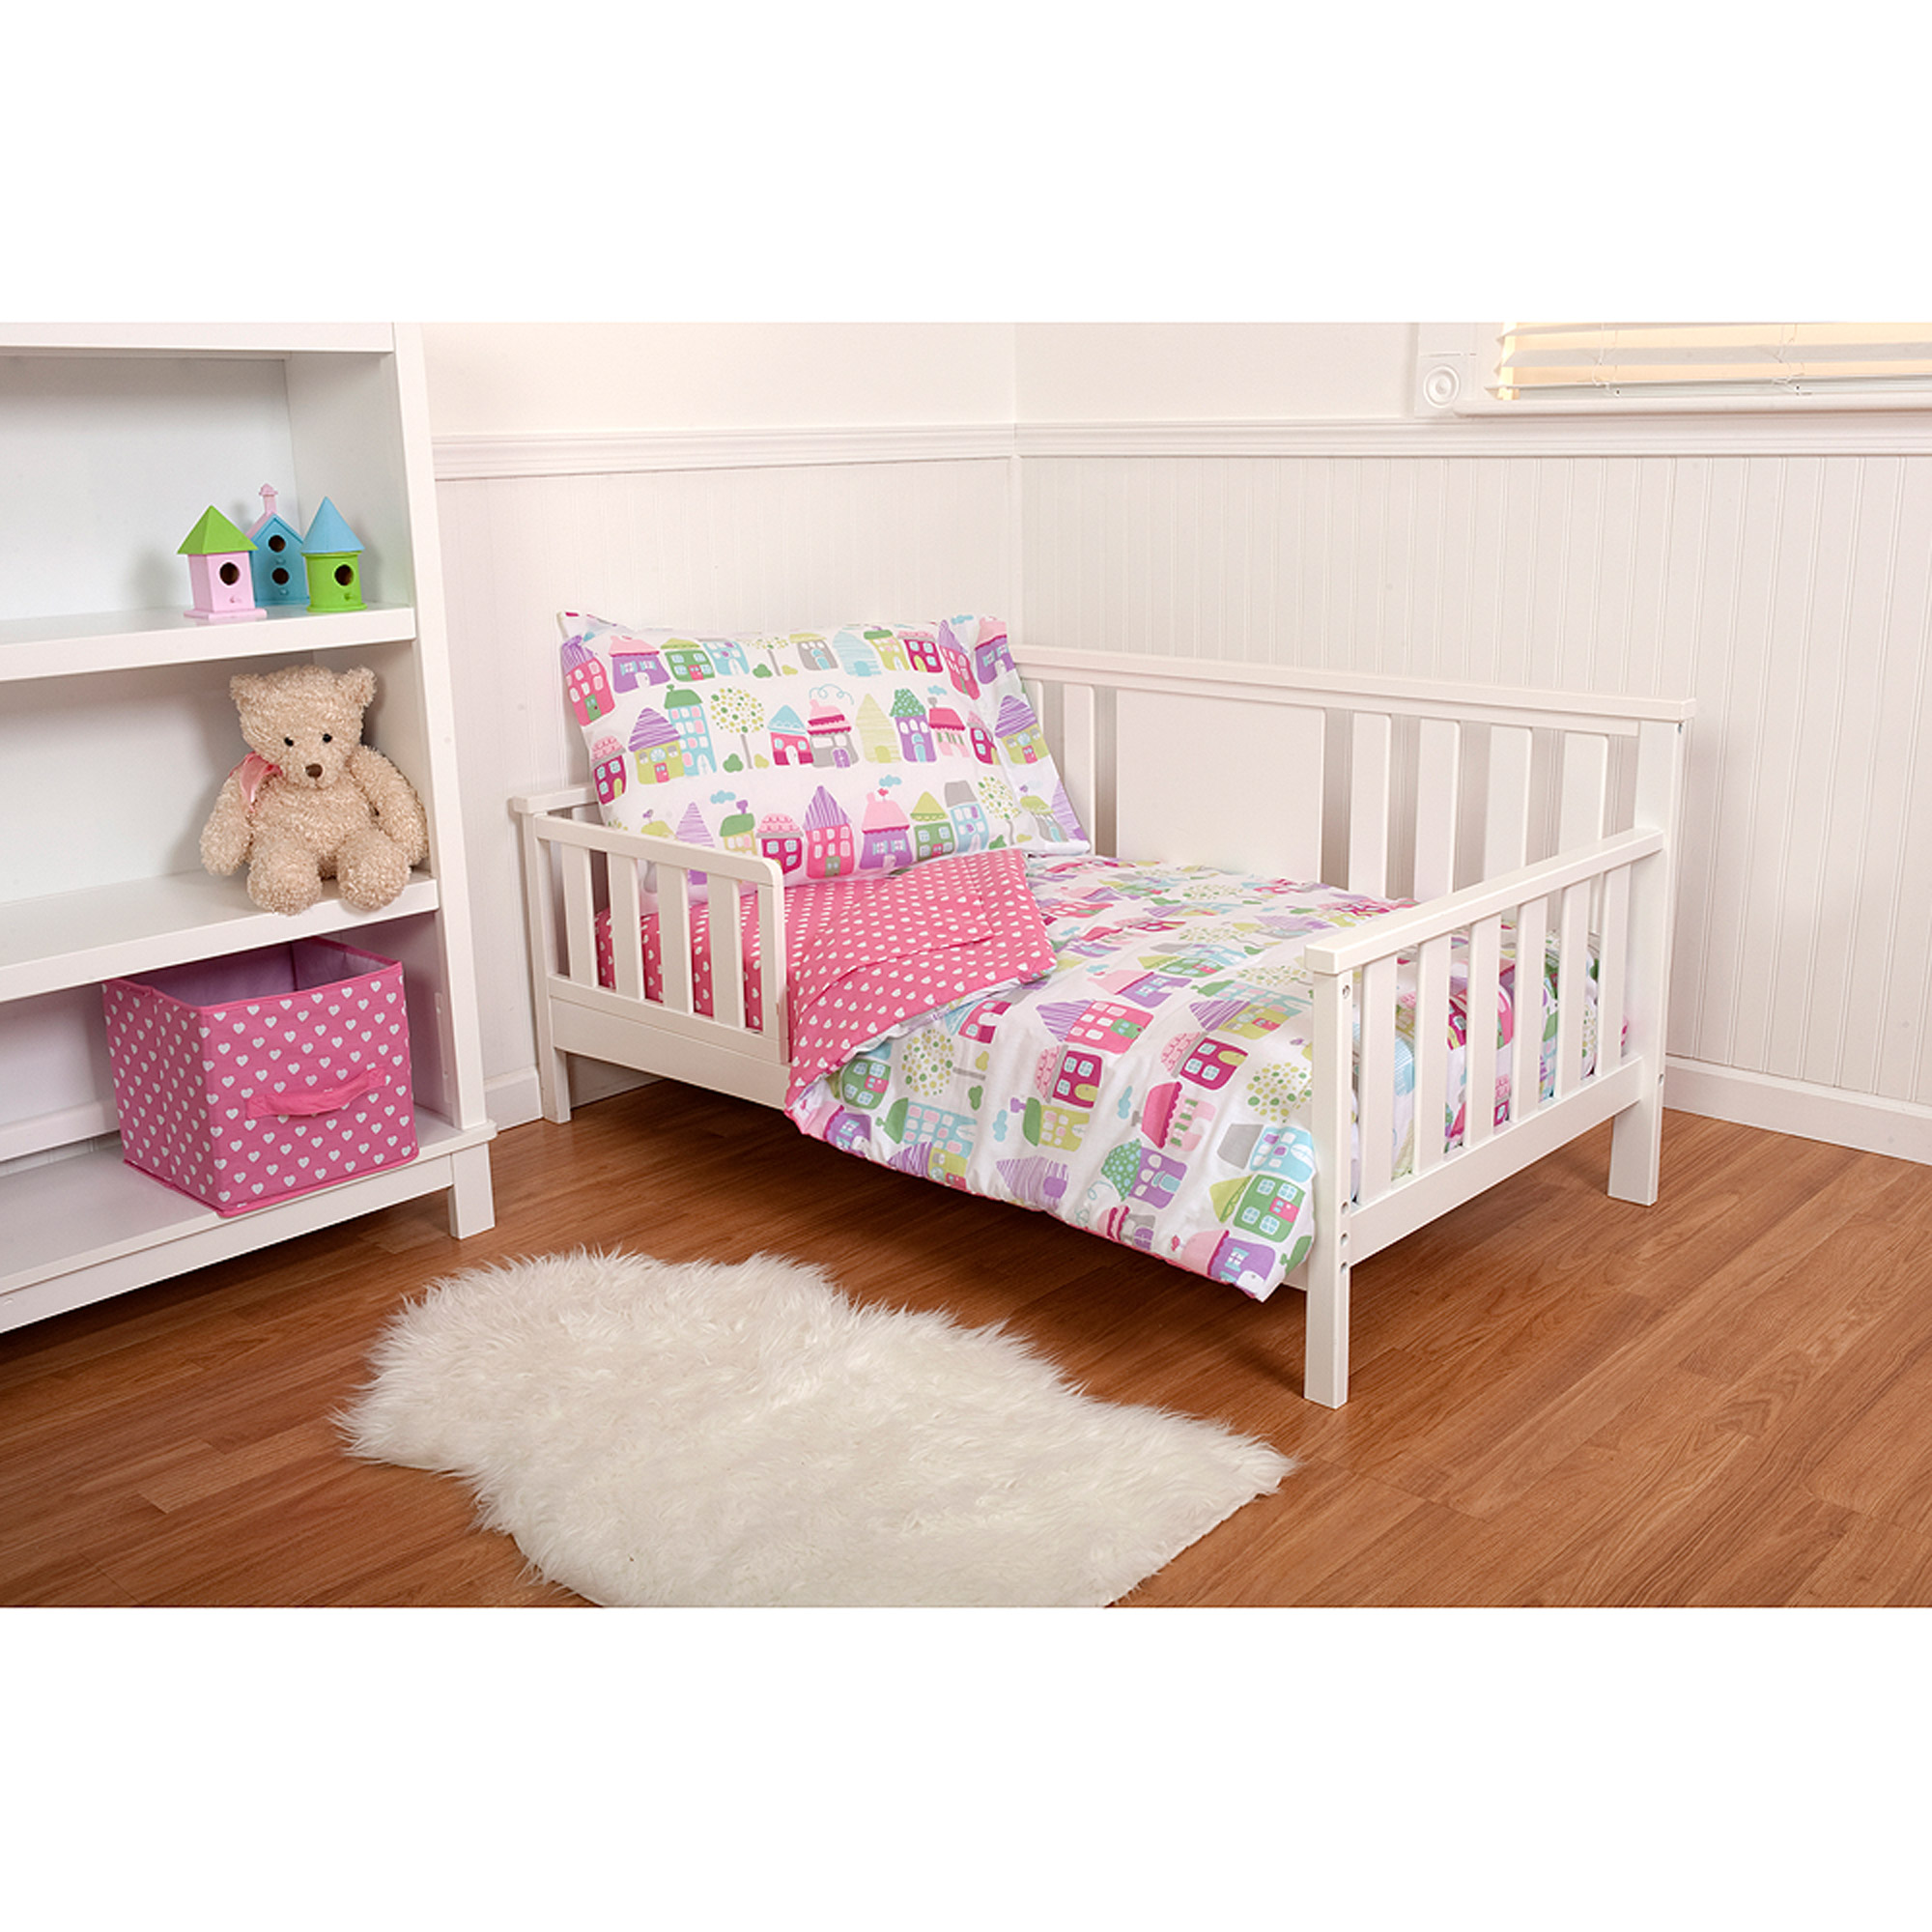 Little Bedding by Nojo Cottages 3-Piece Toddler Bedding Set with BONUS Matching Pillow Case